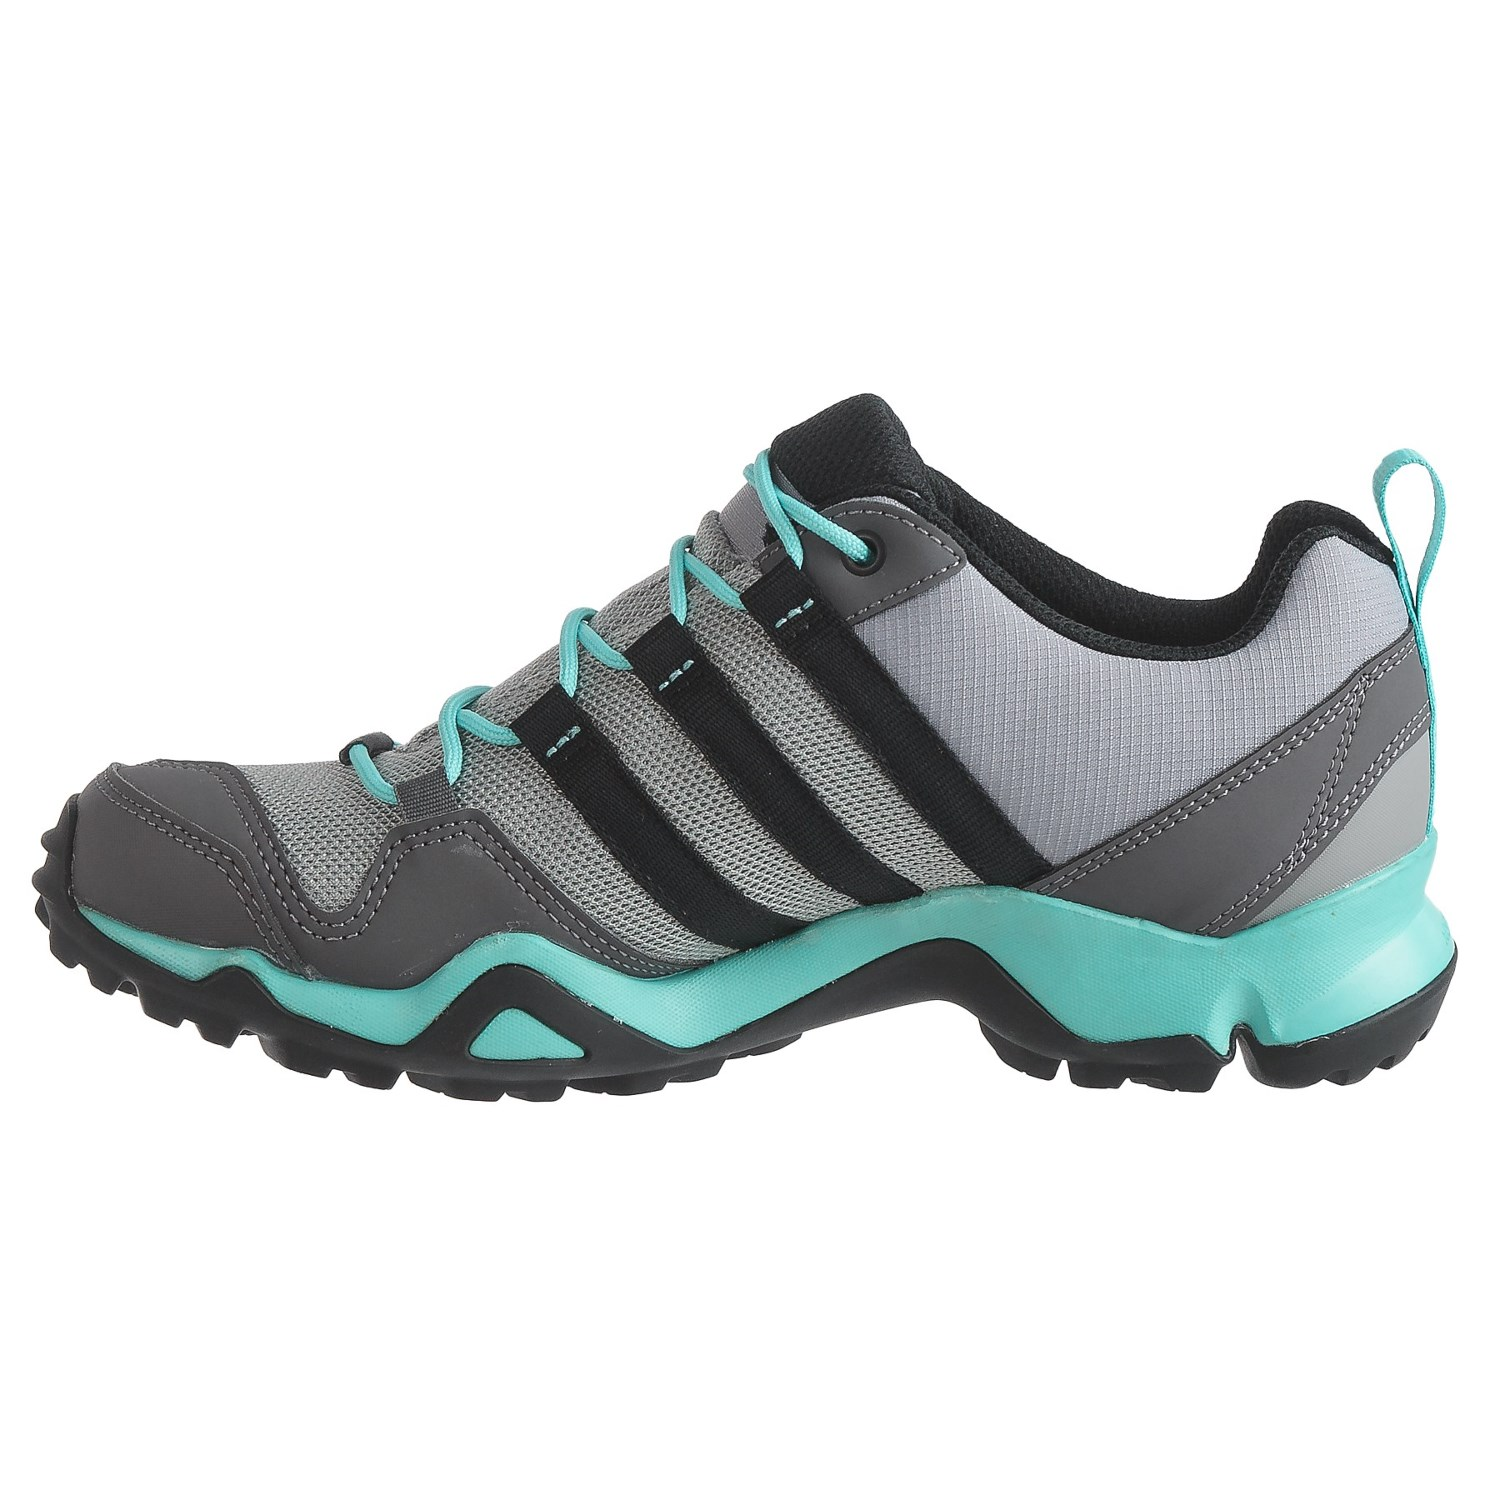 ef4c73221 adidas Terrex AX2R Hiking Shoes (For Women) - Save 37%